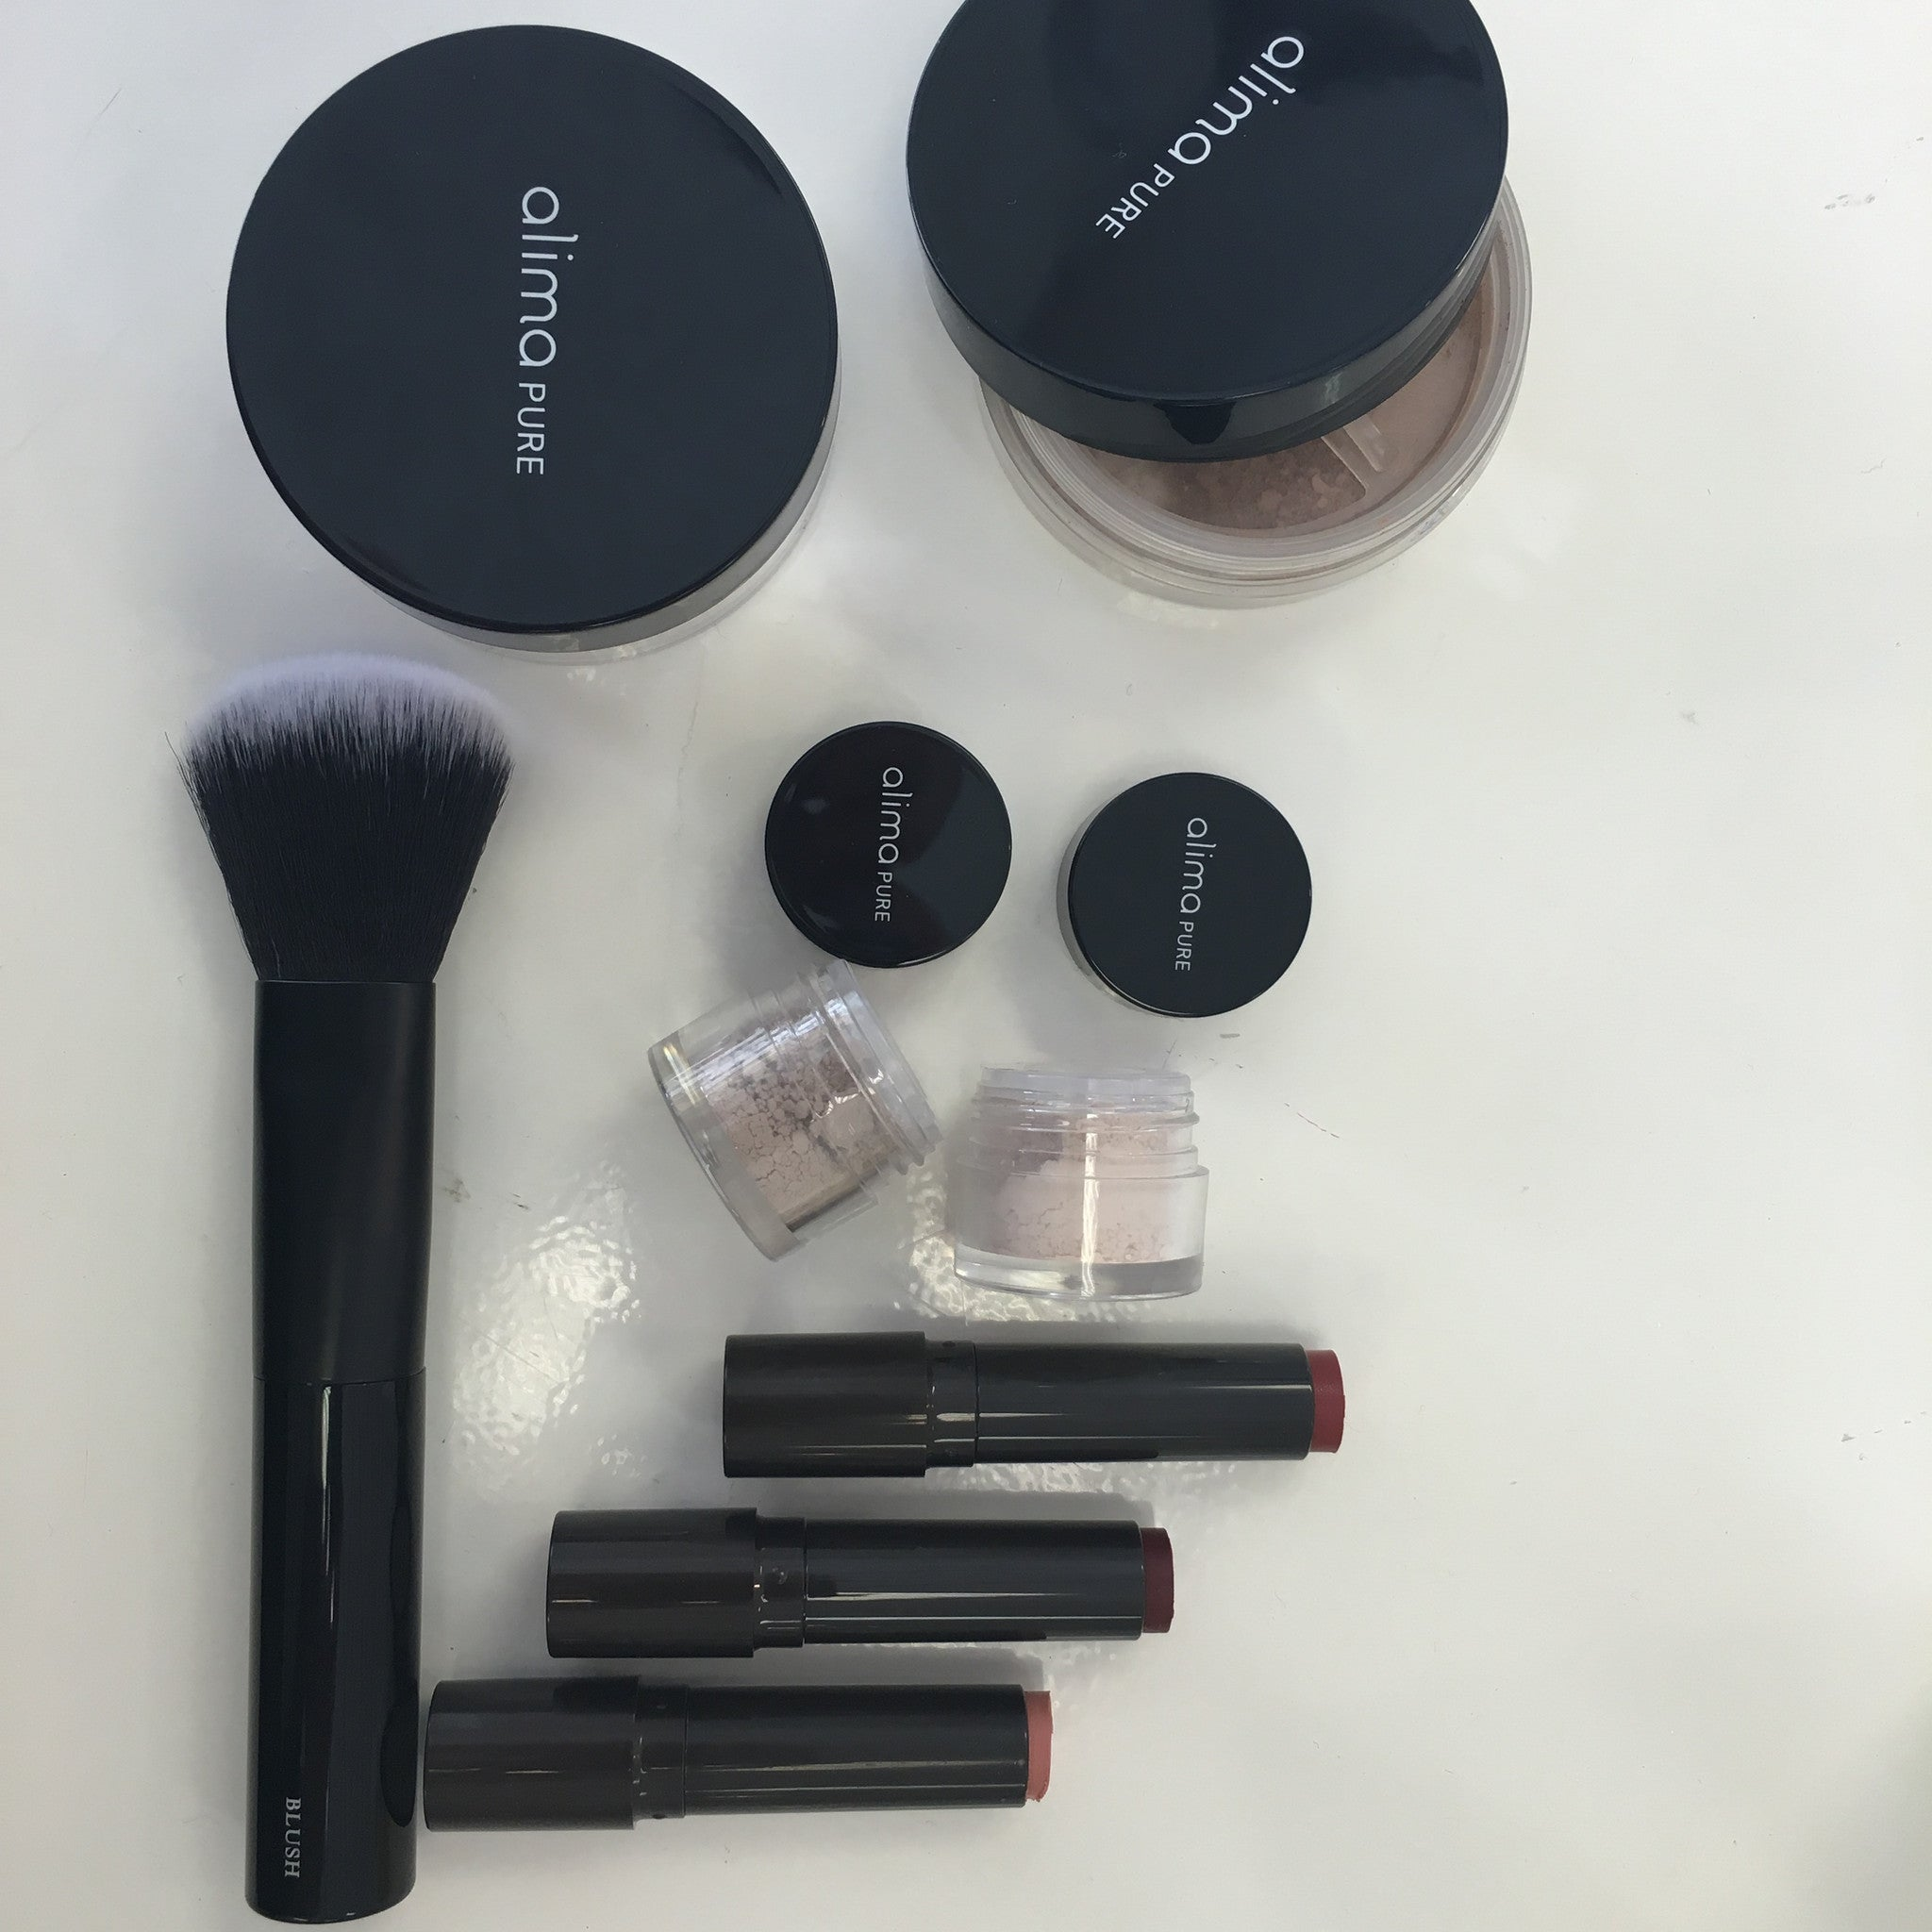 Double Duty Products for a Simple Beauty Routine